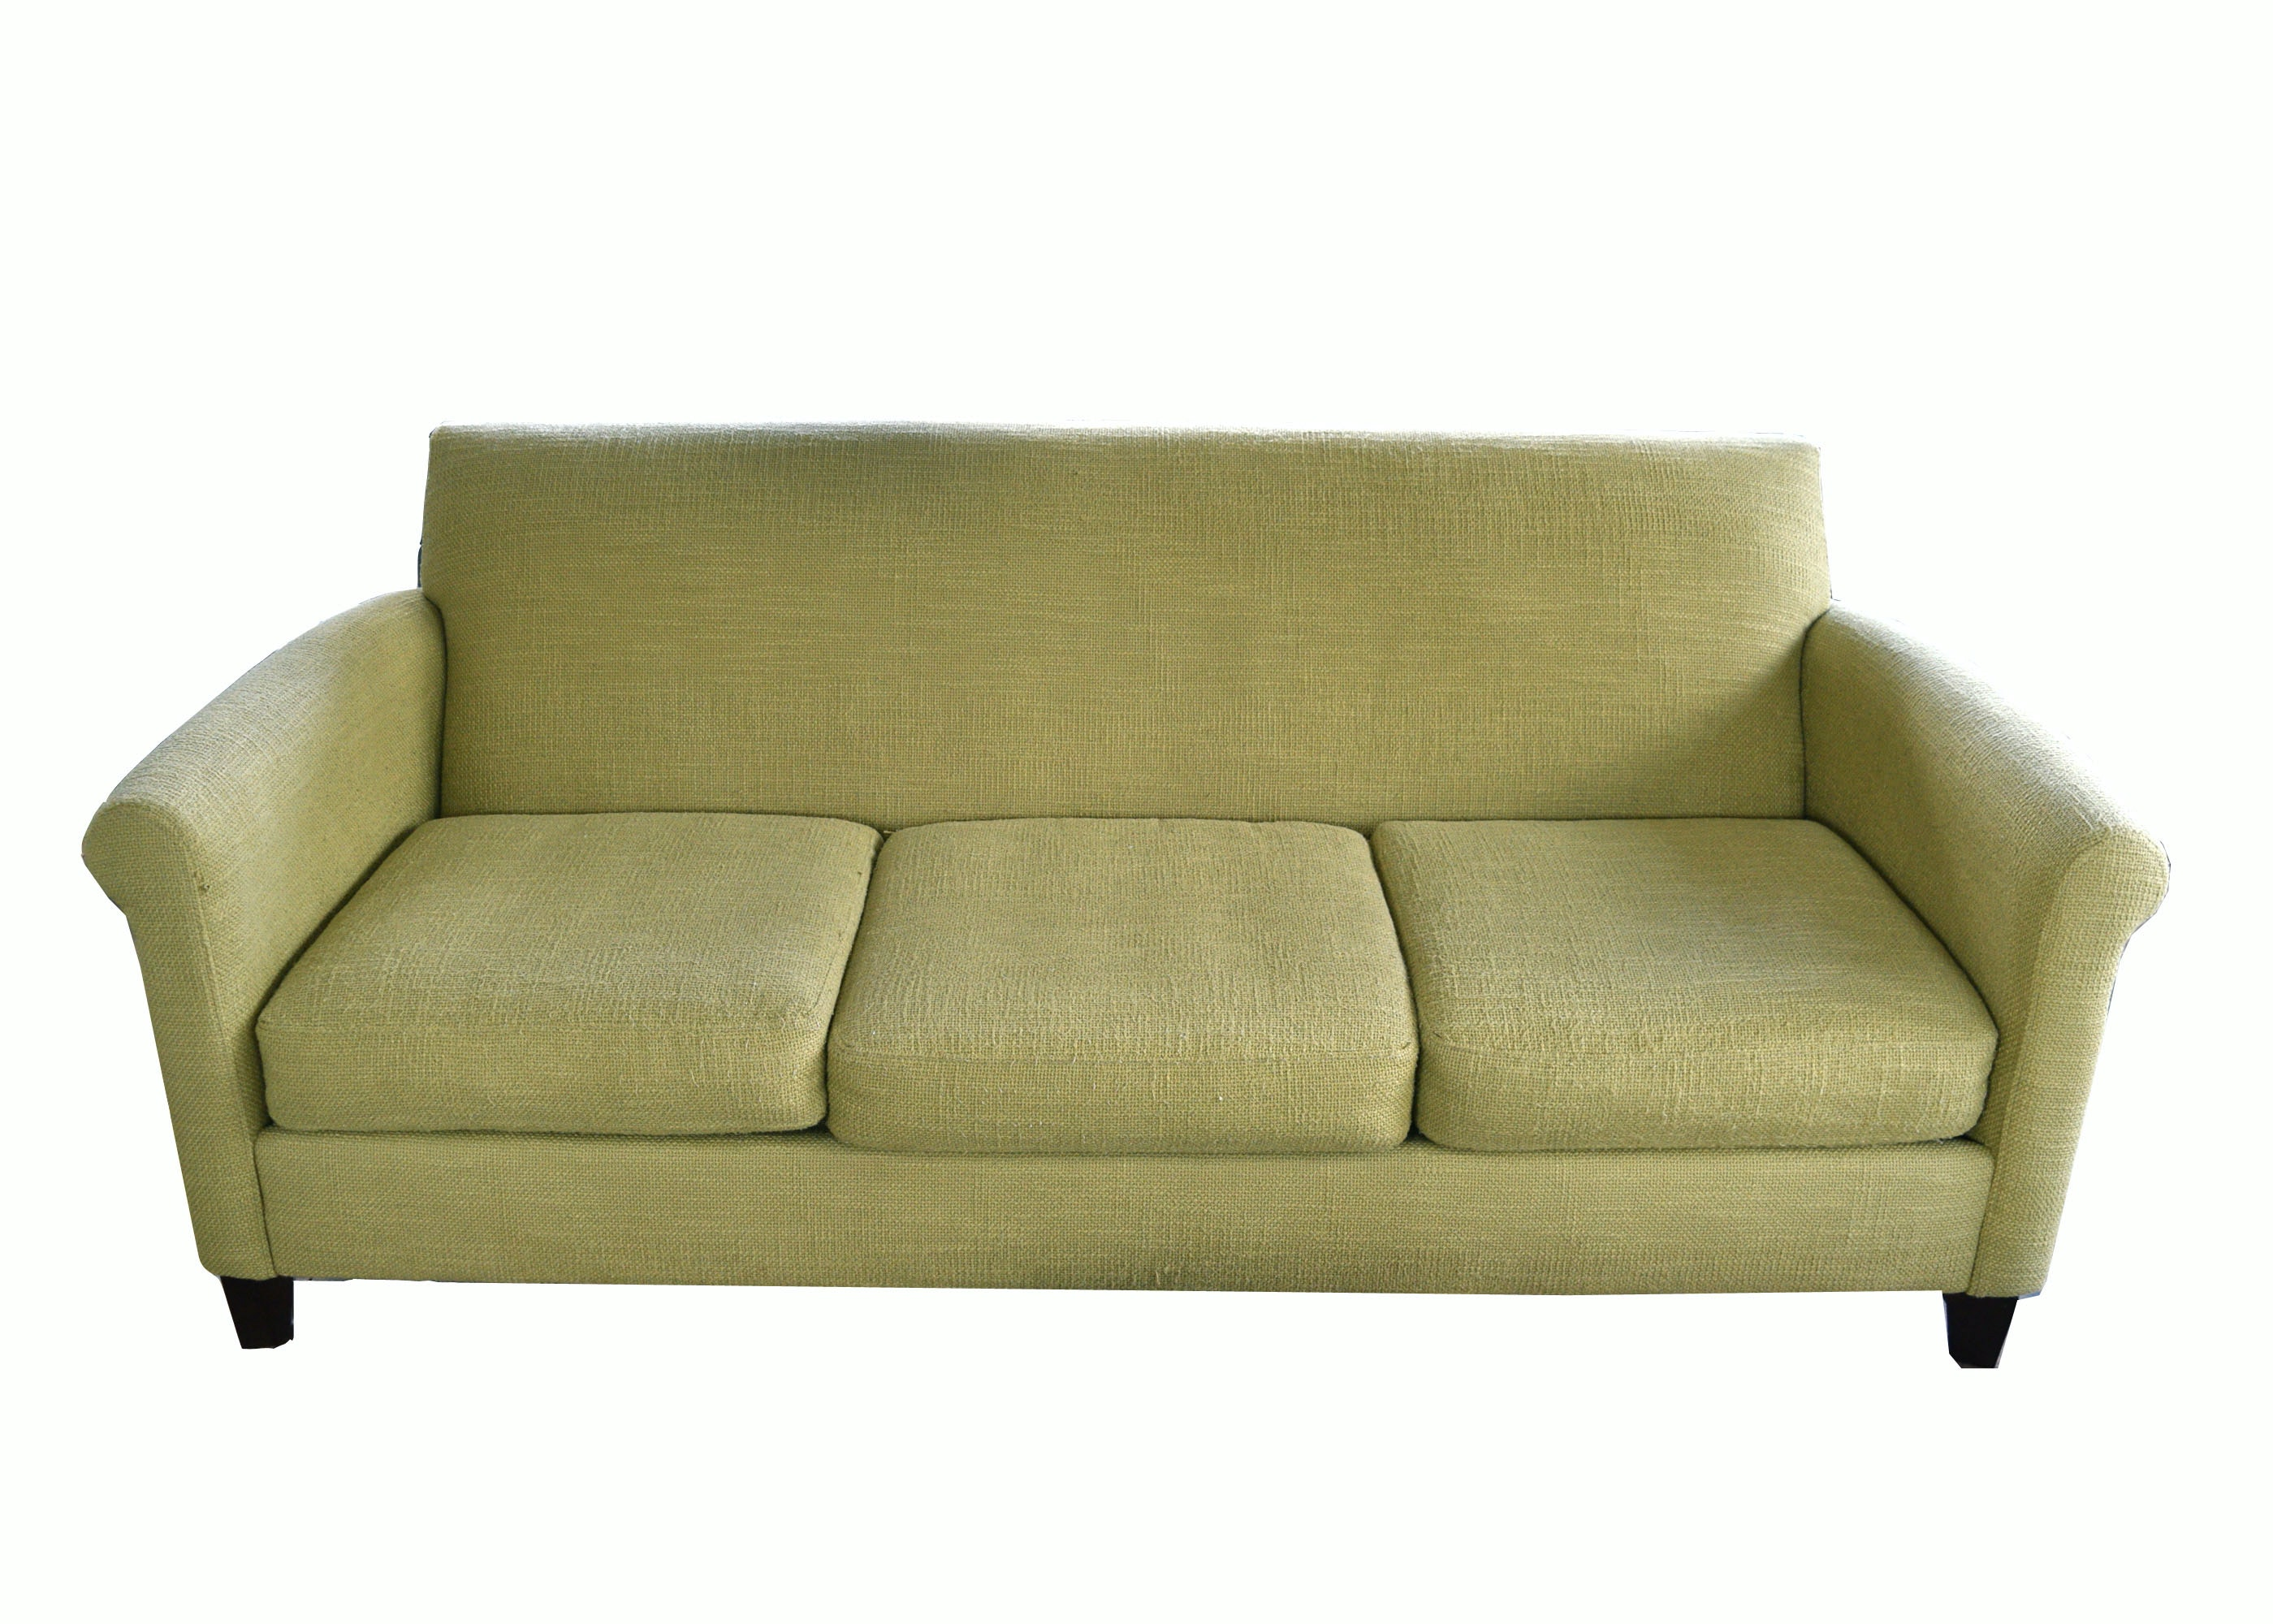 Bon Macyu0027s U0027Max Homeu0027 Olive Colored Linen Sofa ...